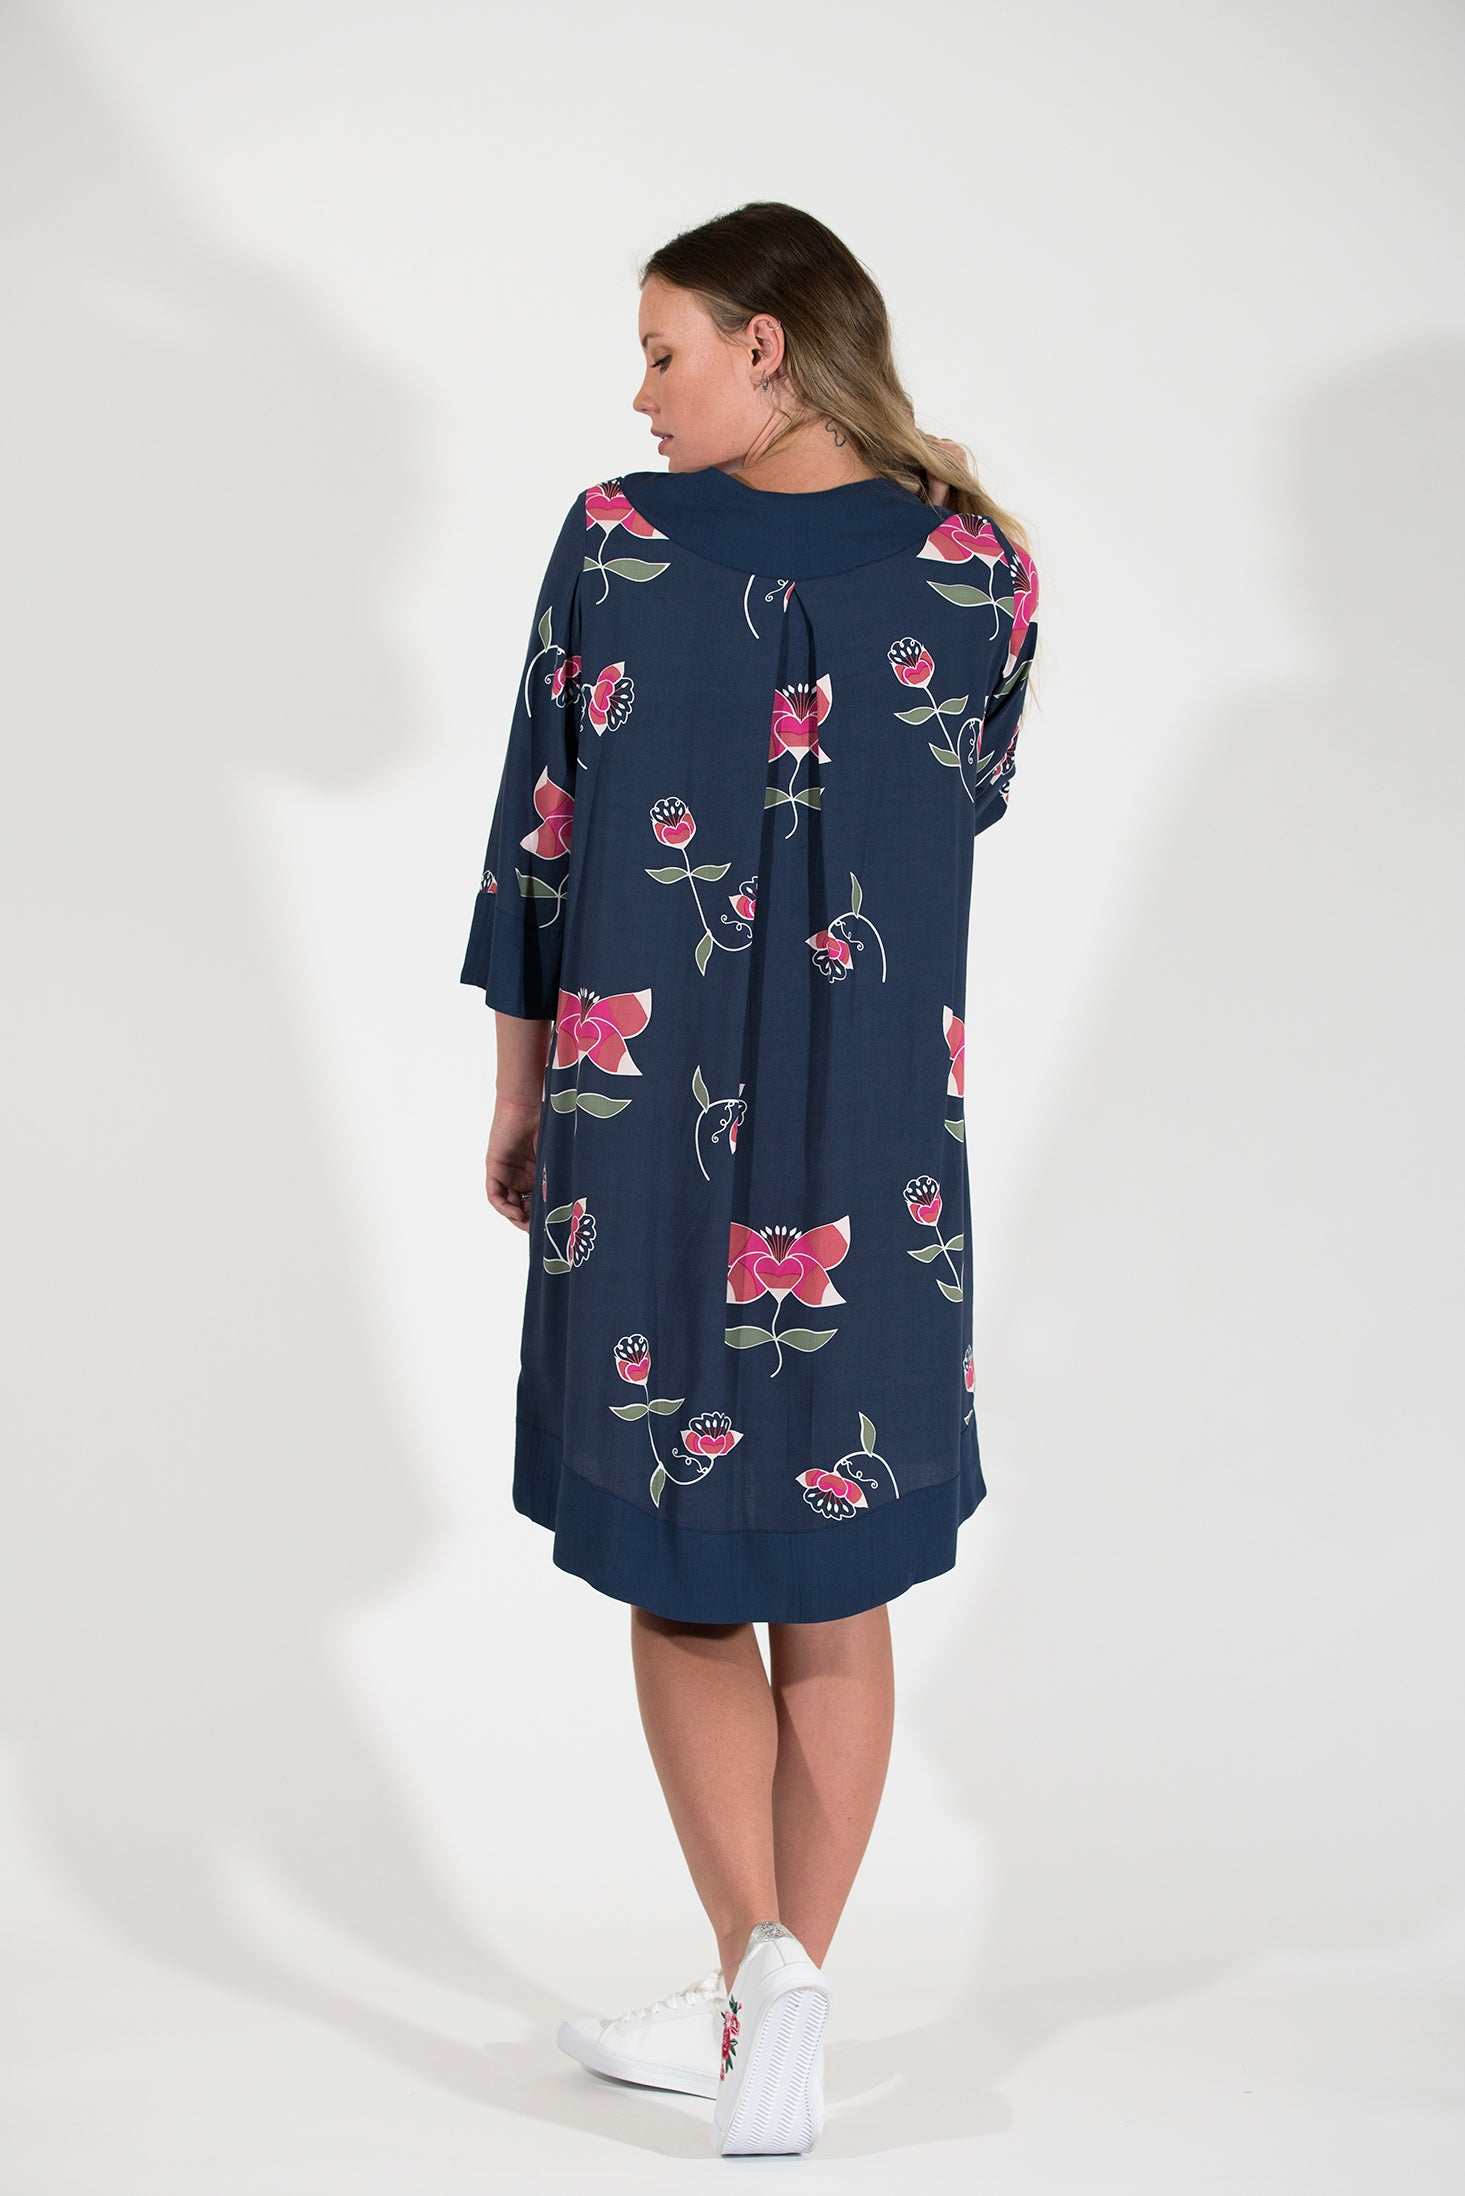 Posy Dress - Pink Lotus